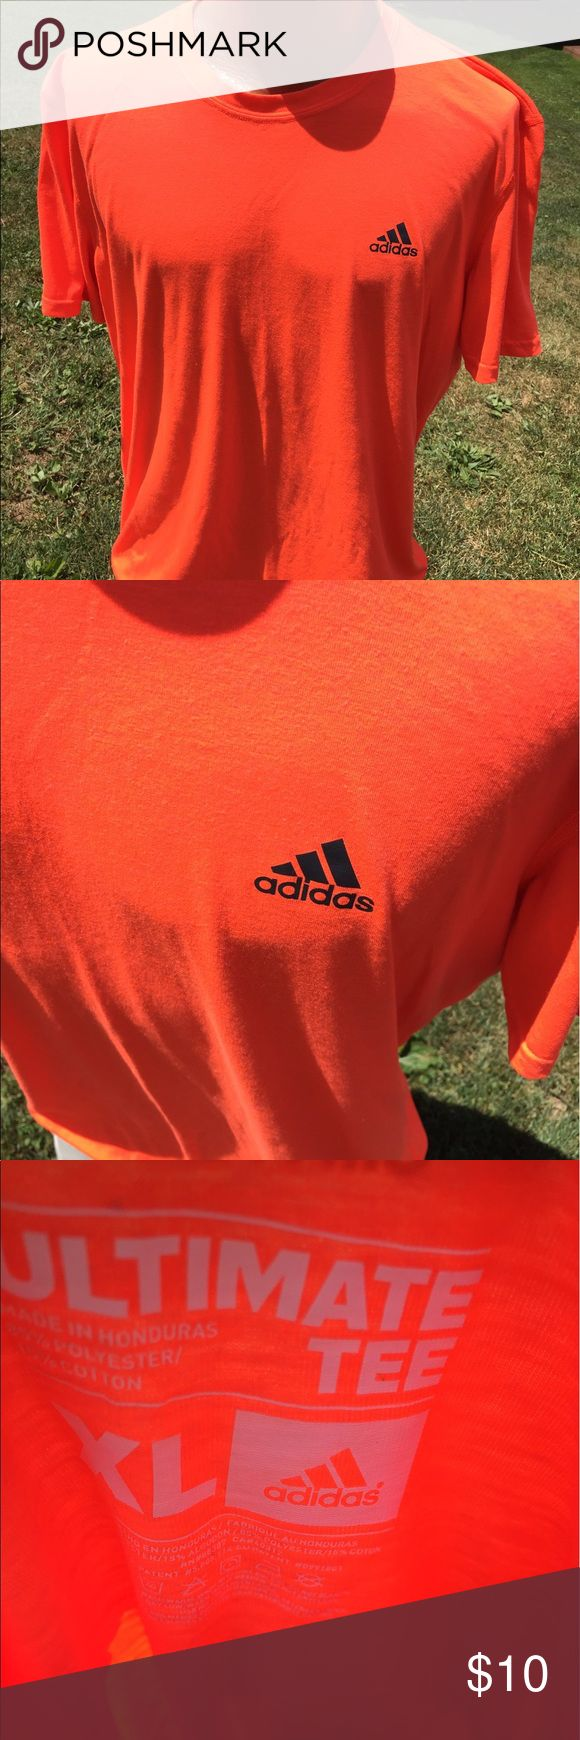 Adidas Neon Orange Mens Ultimate Tee Shirt XL Size XL. Super gently preowned. Be sure to view the other items in our closet. We offer  women's, Mens and kids items in a variety of sizes. Bundle and save!! Thank you for viewing our item!! adidas Shirts Tees - Short Sleeve